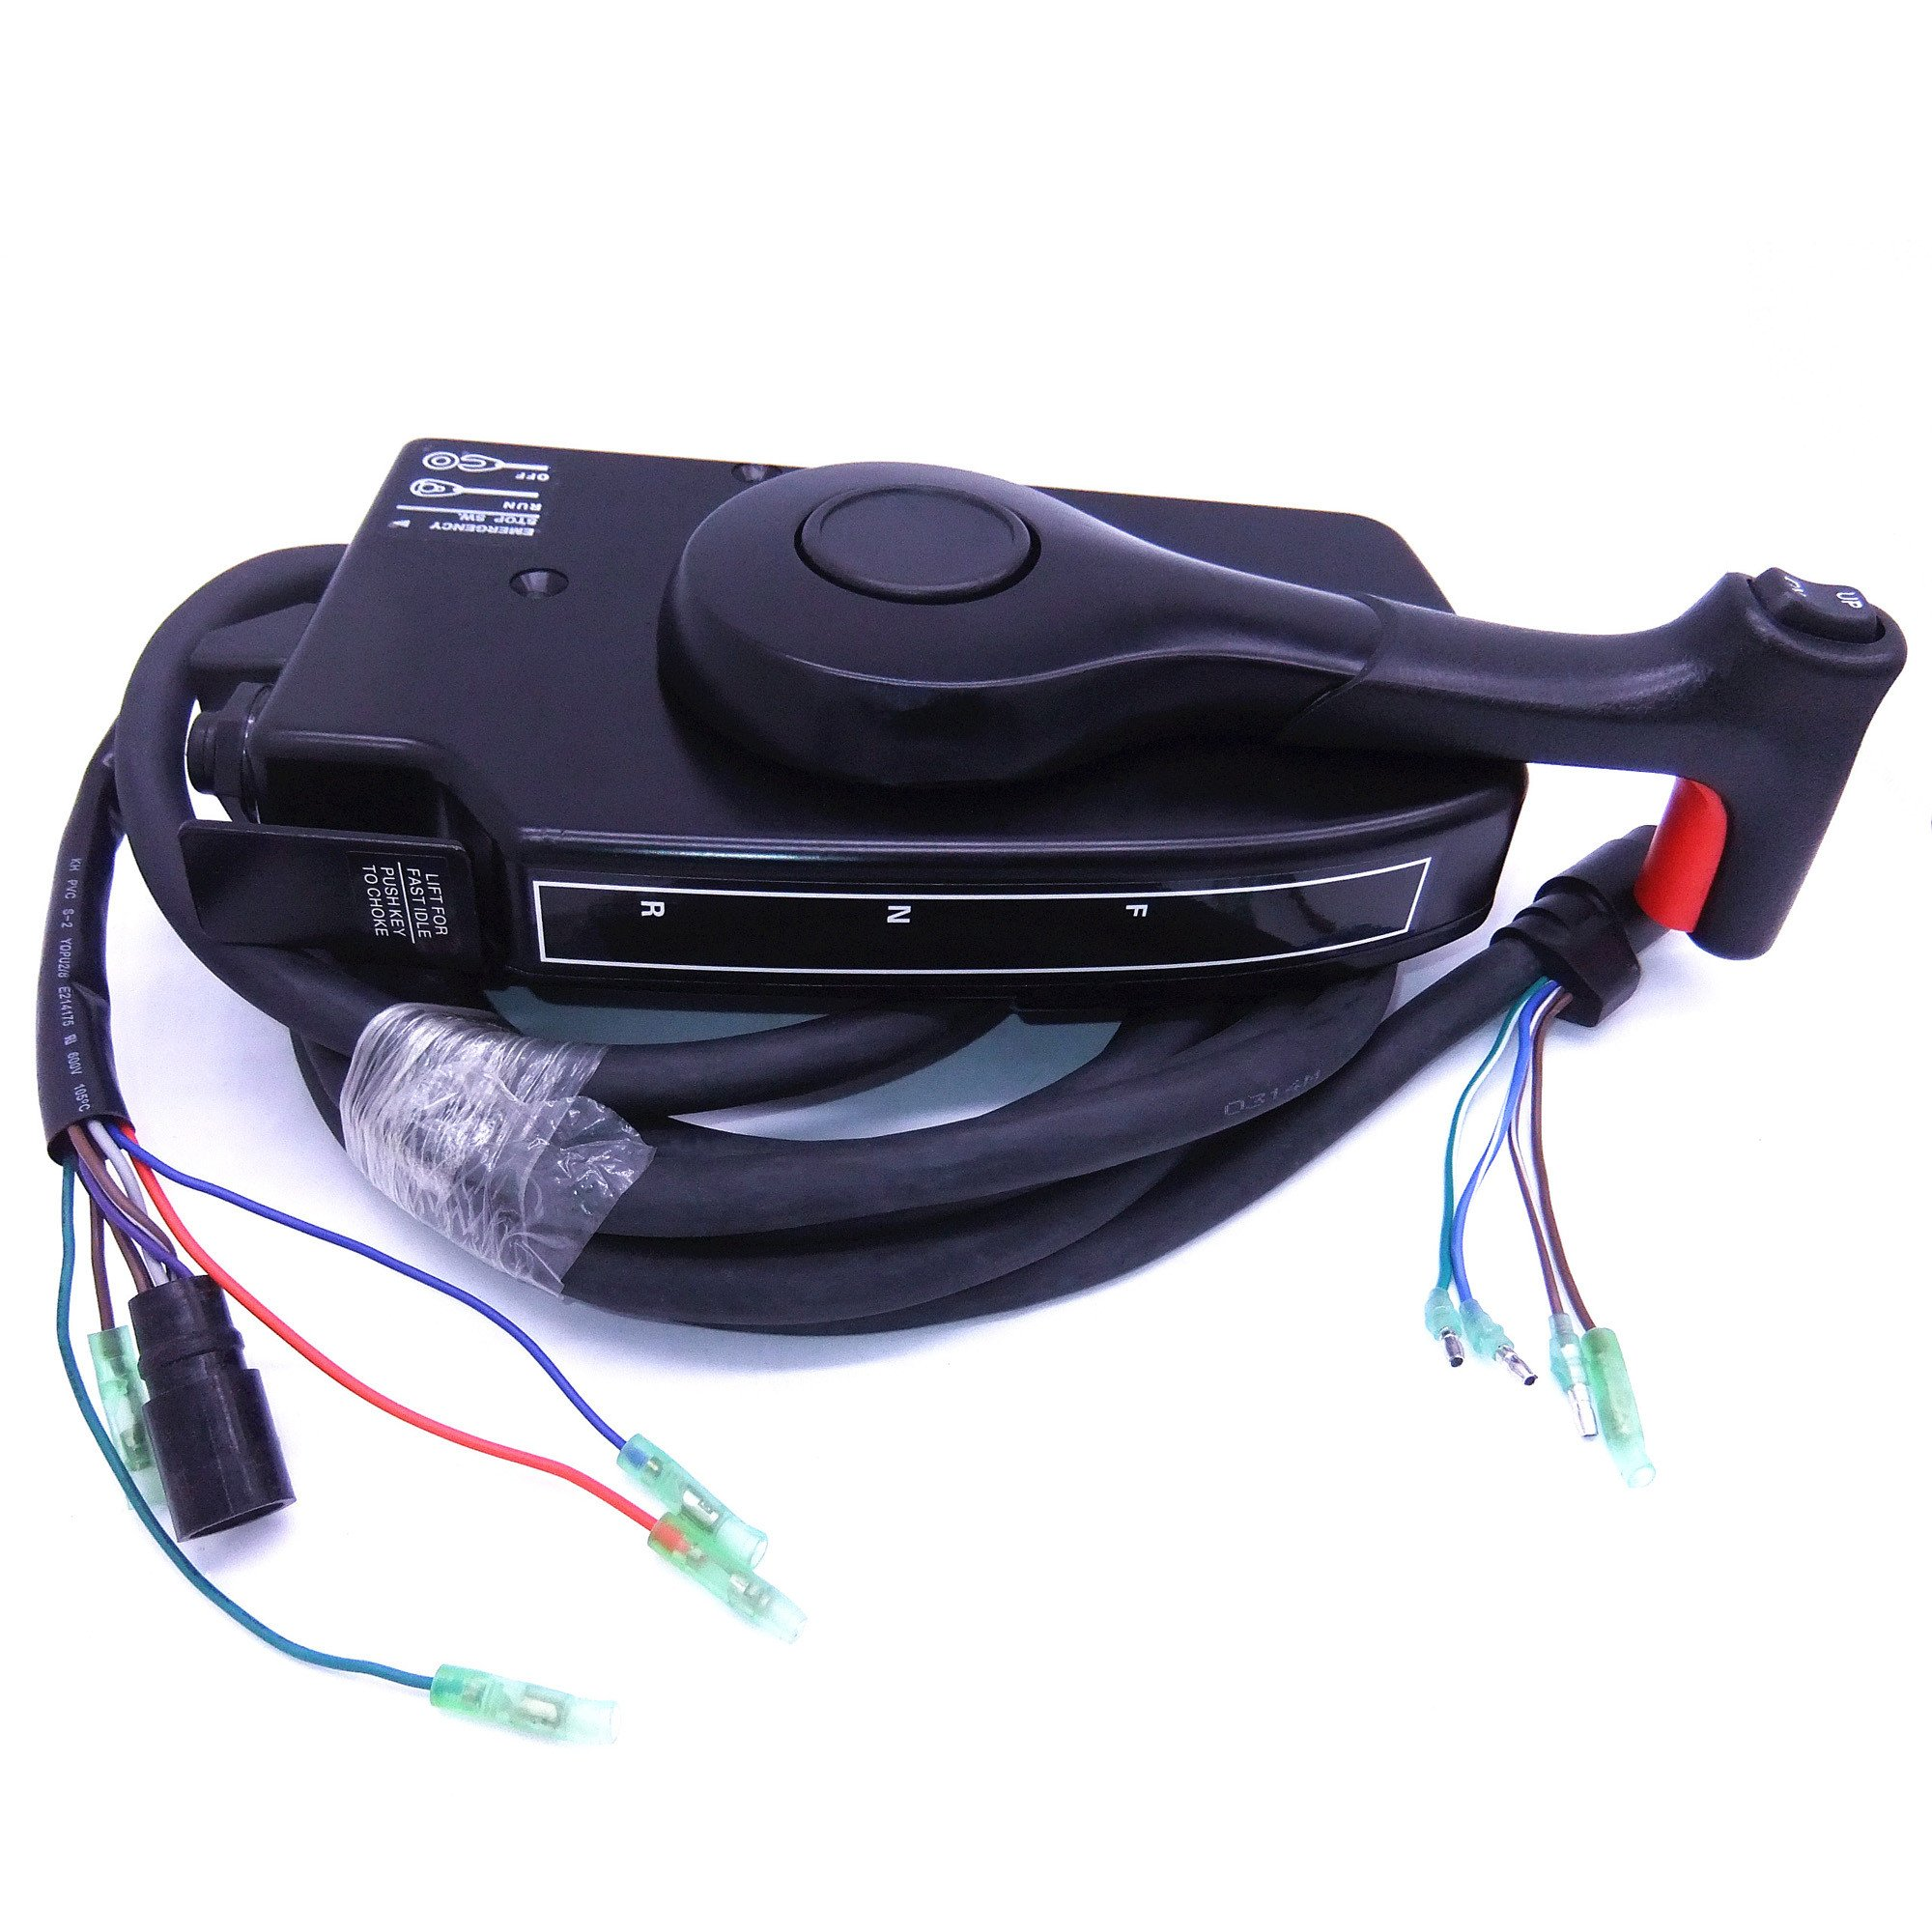 55 nissan outboard wiring harness amazon com southmarine  amazon com southmarine